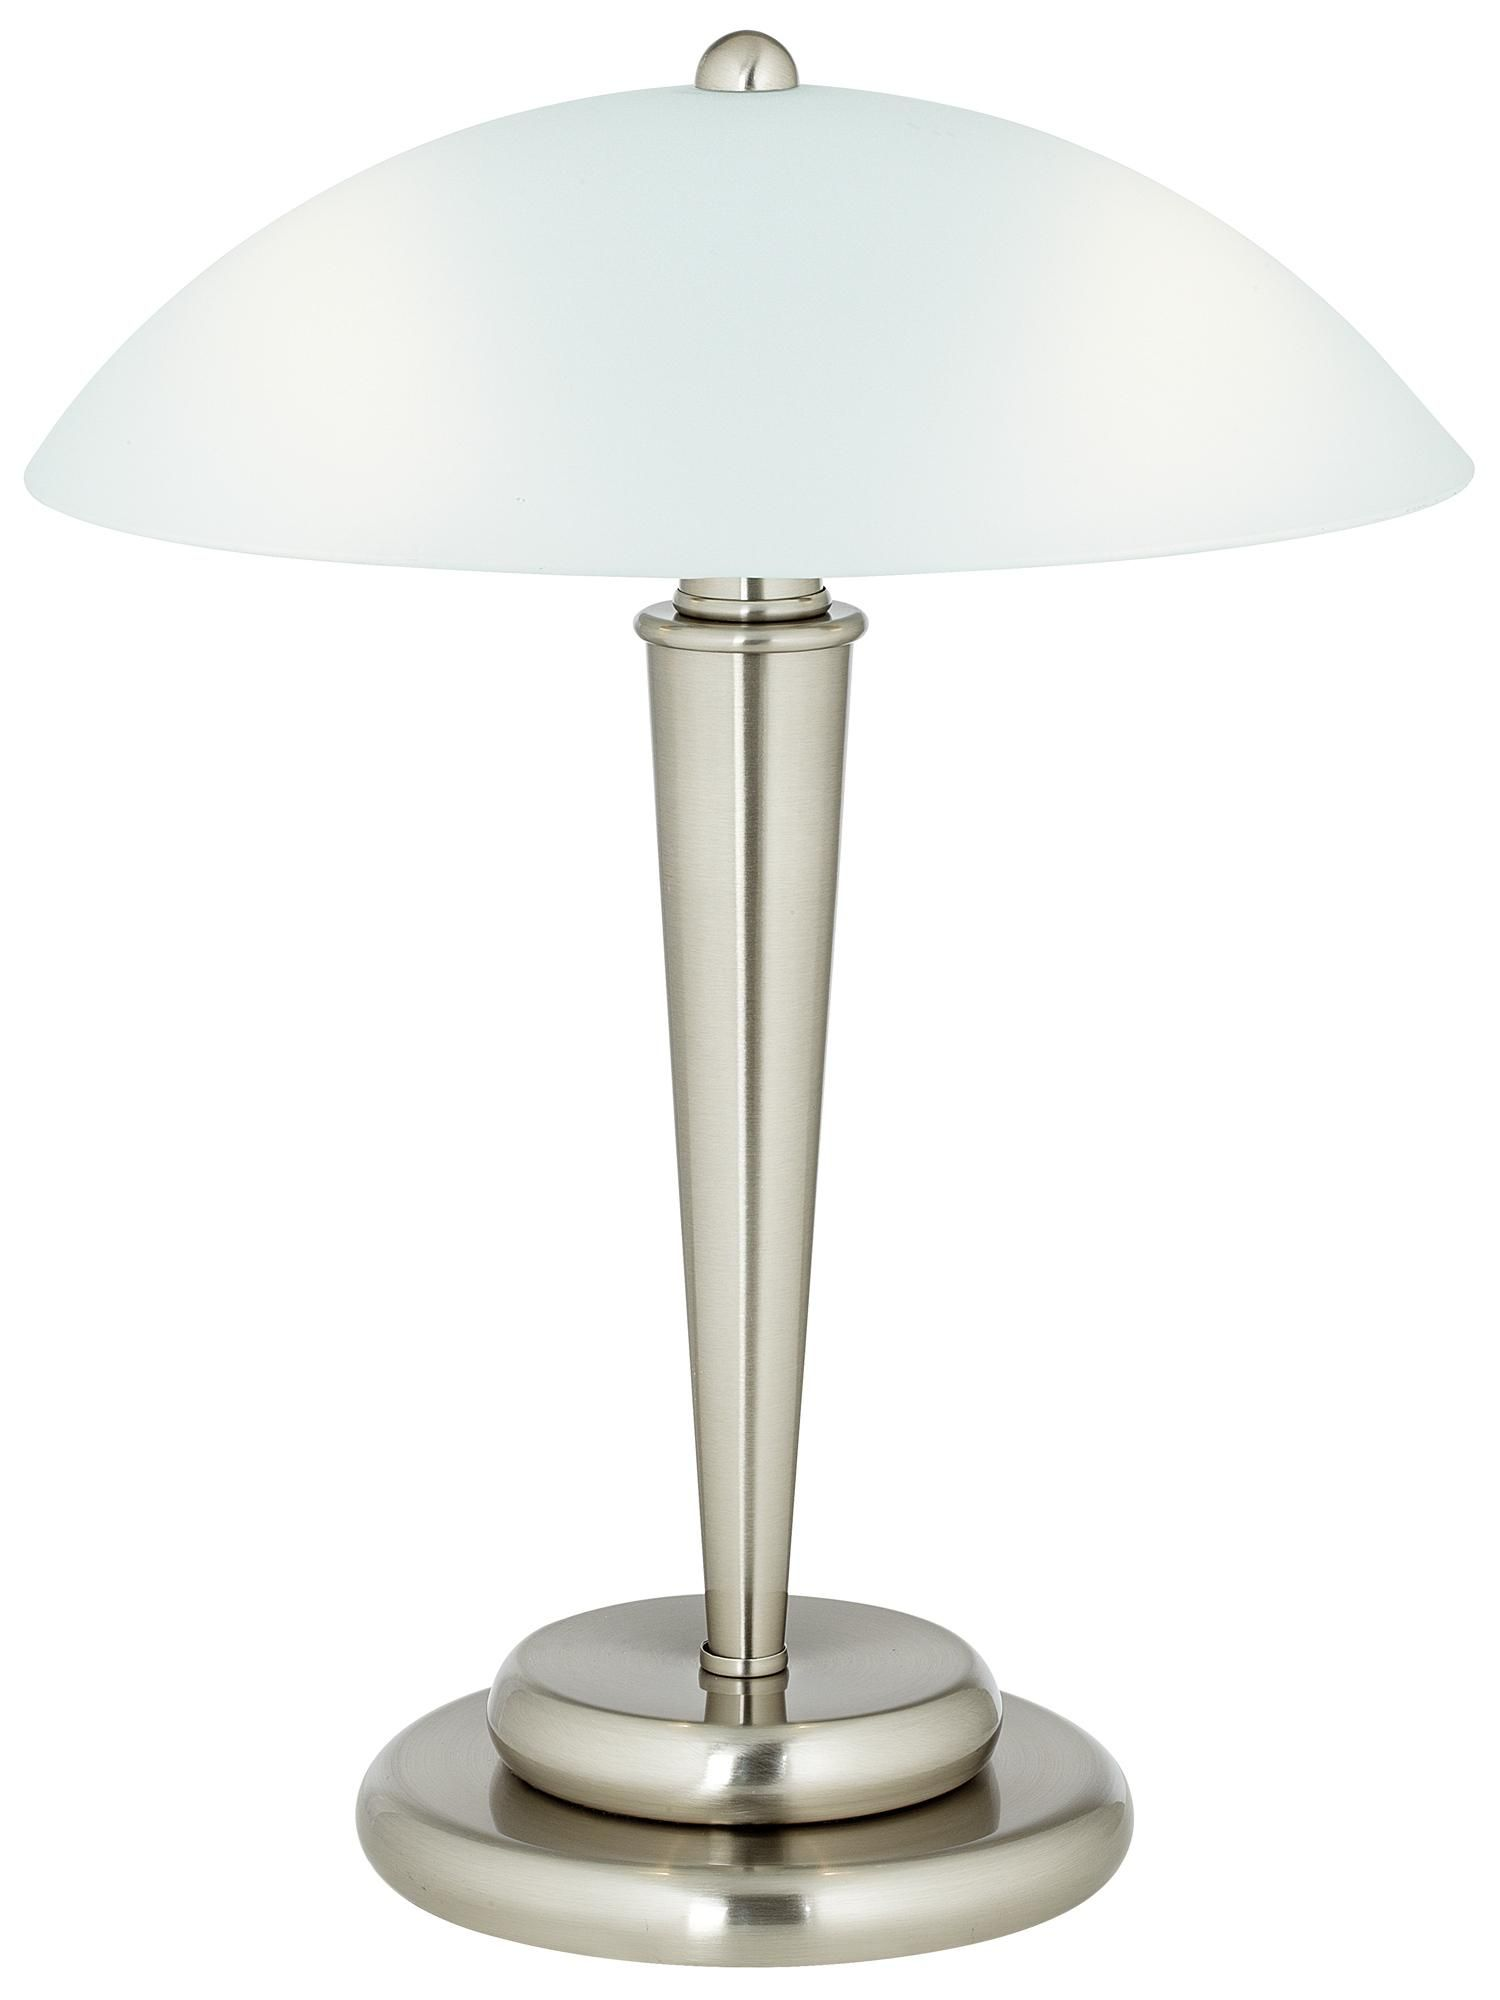 Deco Dome 17 High Touch On Off Accent Lamp P6169 Lamps Plus Touch Lamp Lamp Touch Table Lamps